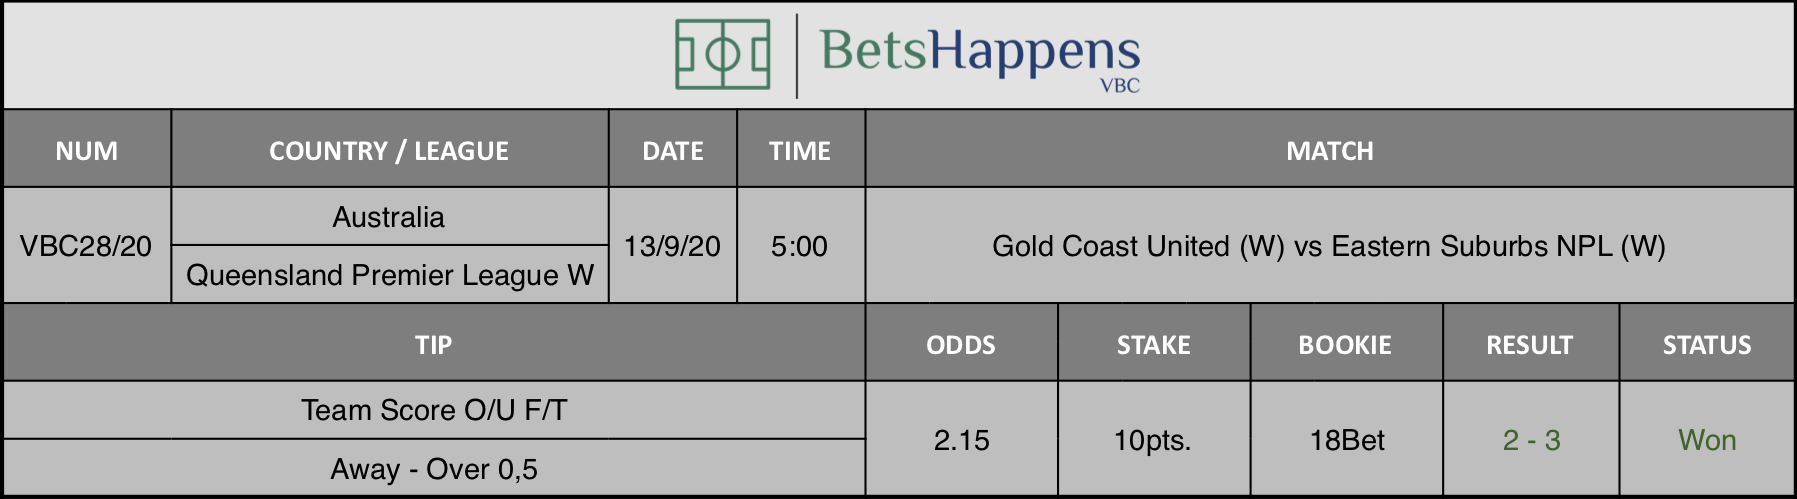 Results of our advice for the Gold Coast United (W) vs Eastern Suburbs NPL (W) match in which Team Score O / U F / T Away Over 0.5 is recommended.